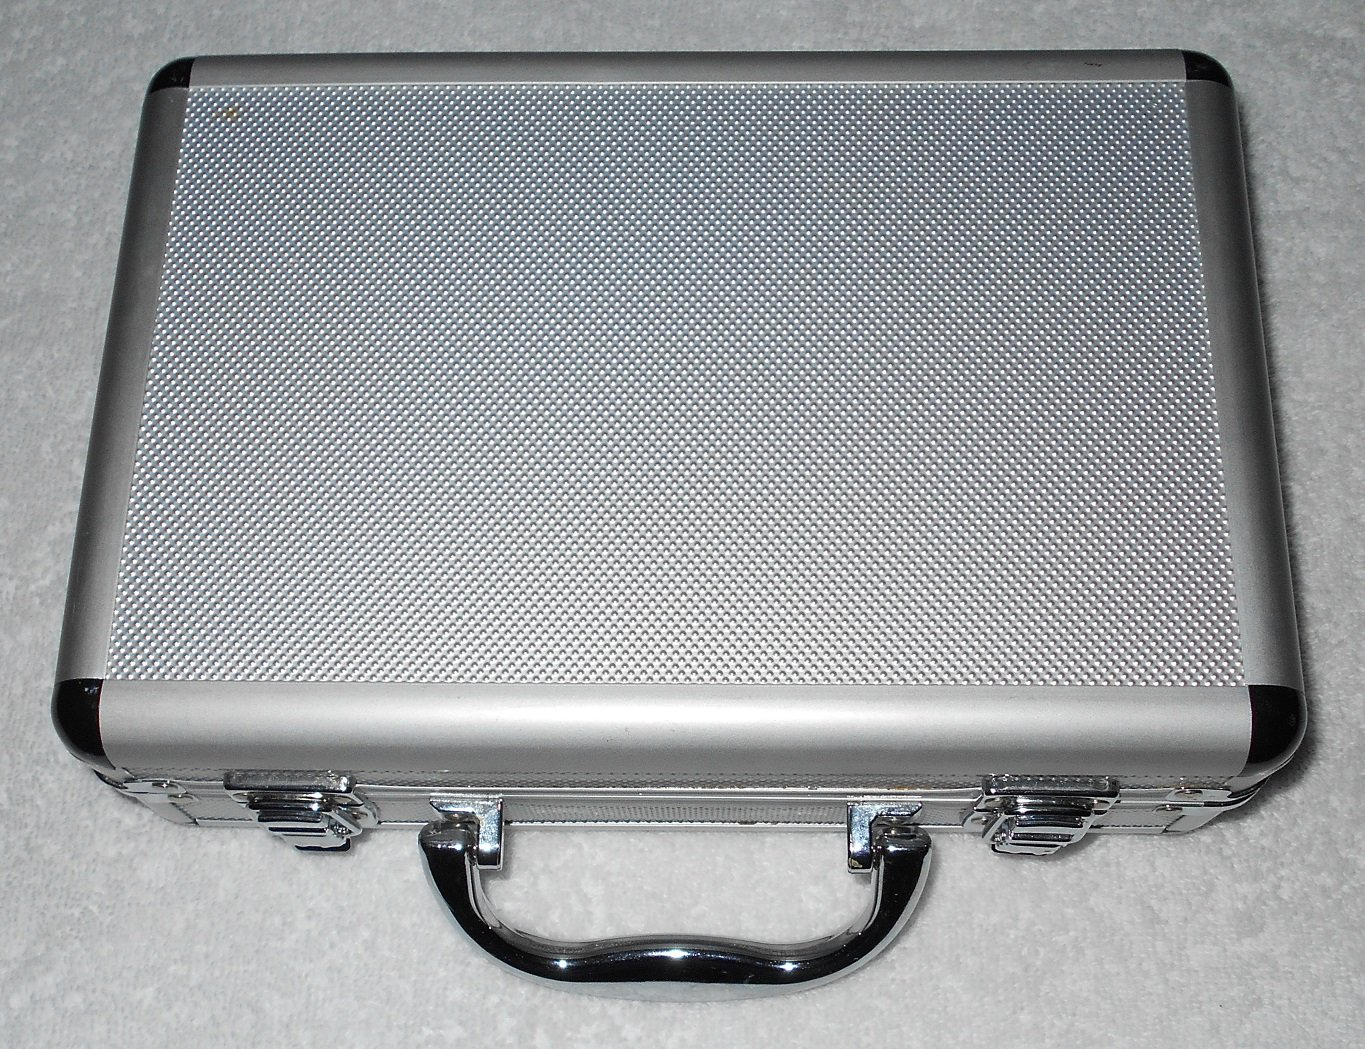 Hinged Hard Plastic Case w/ Metal Handle - Light Grey w/ Silver Trim - 4 Inside Pouches - Lining